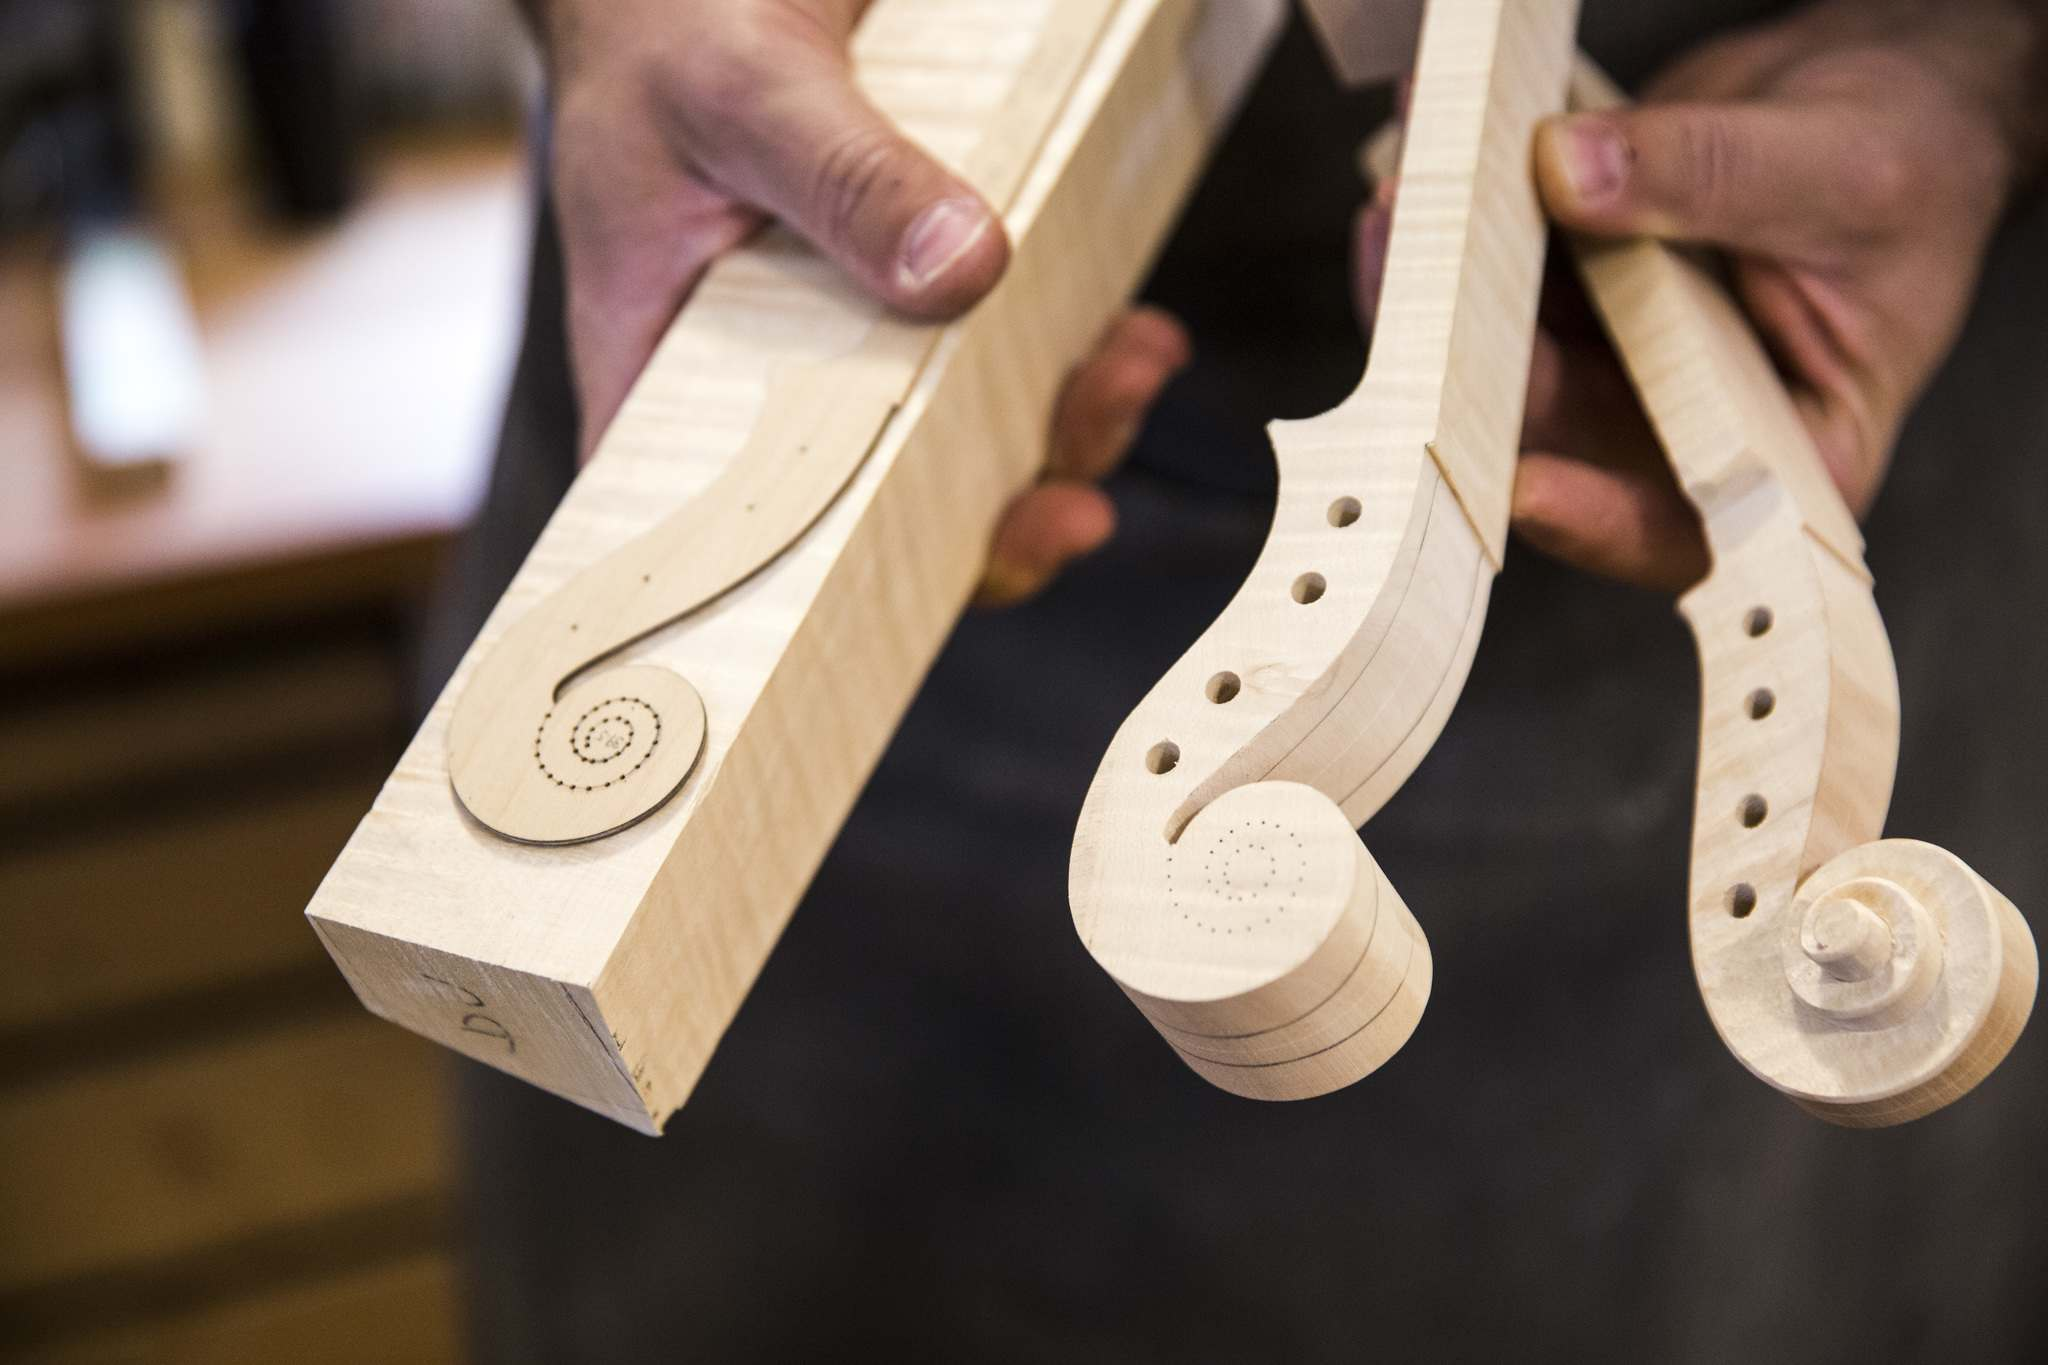 Violin scrolls in various stages of completion.